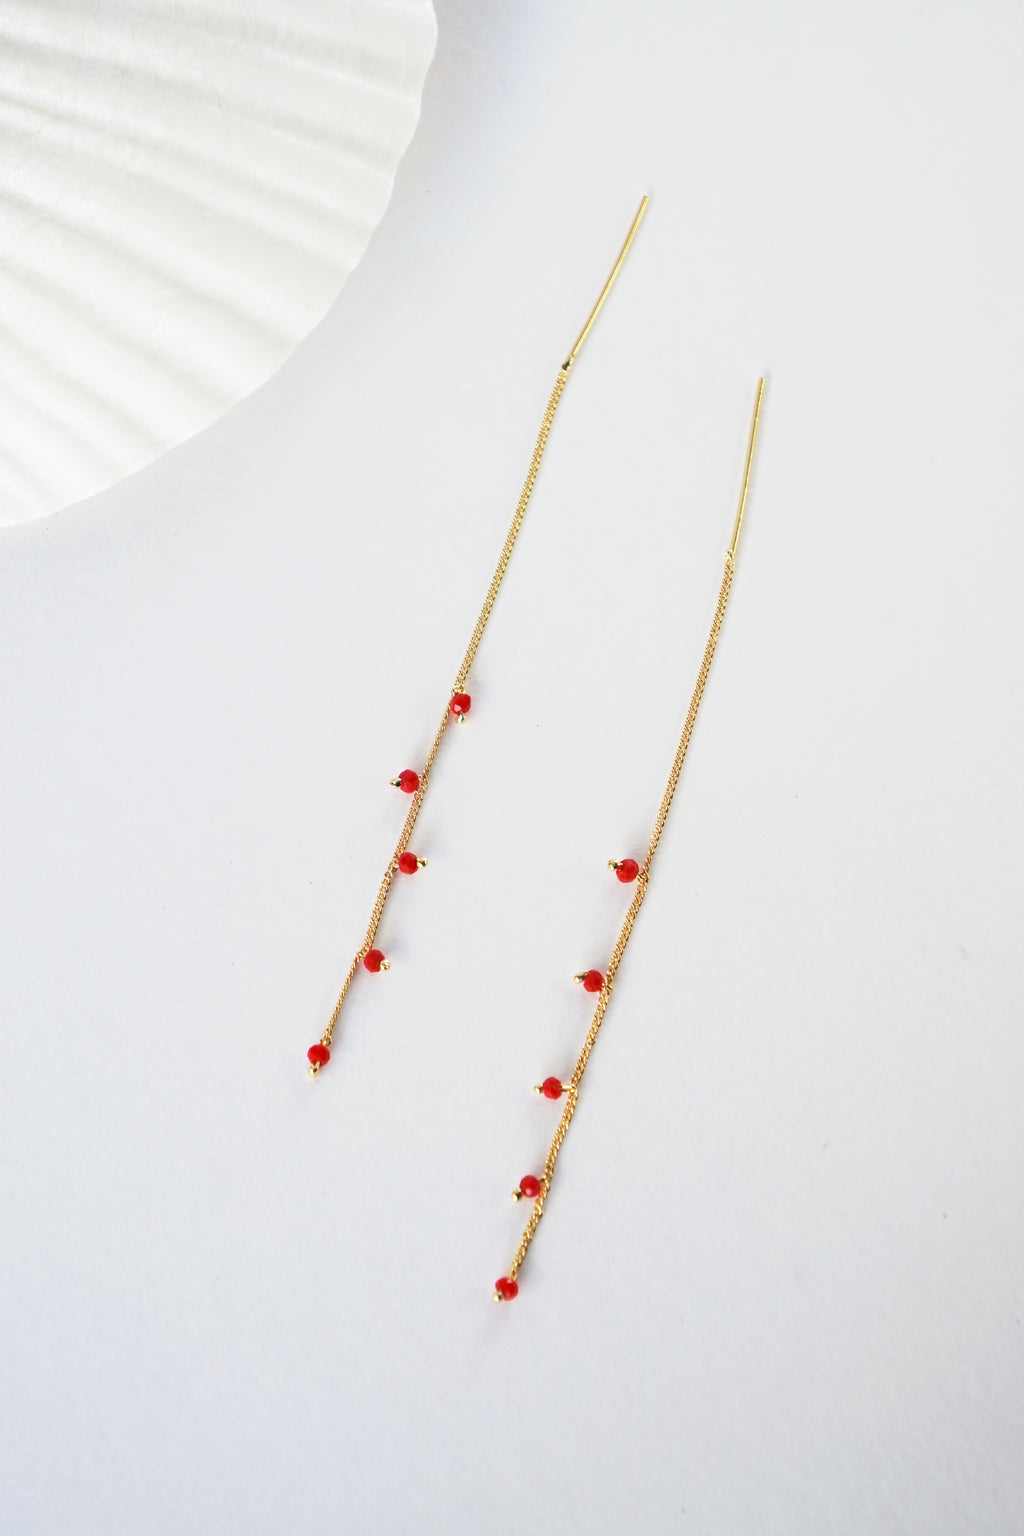 Wisteria Ear Threaders in Gold - Red